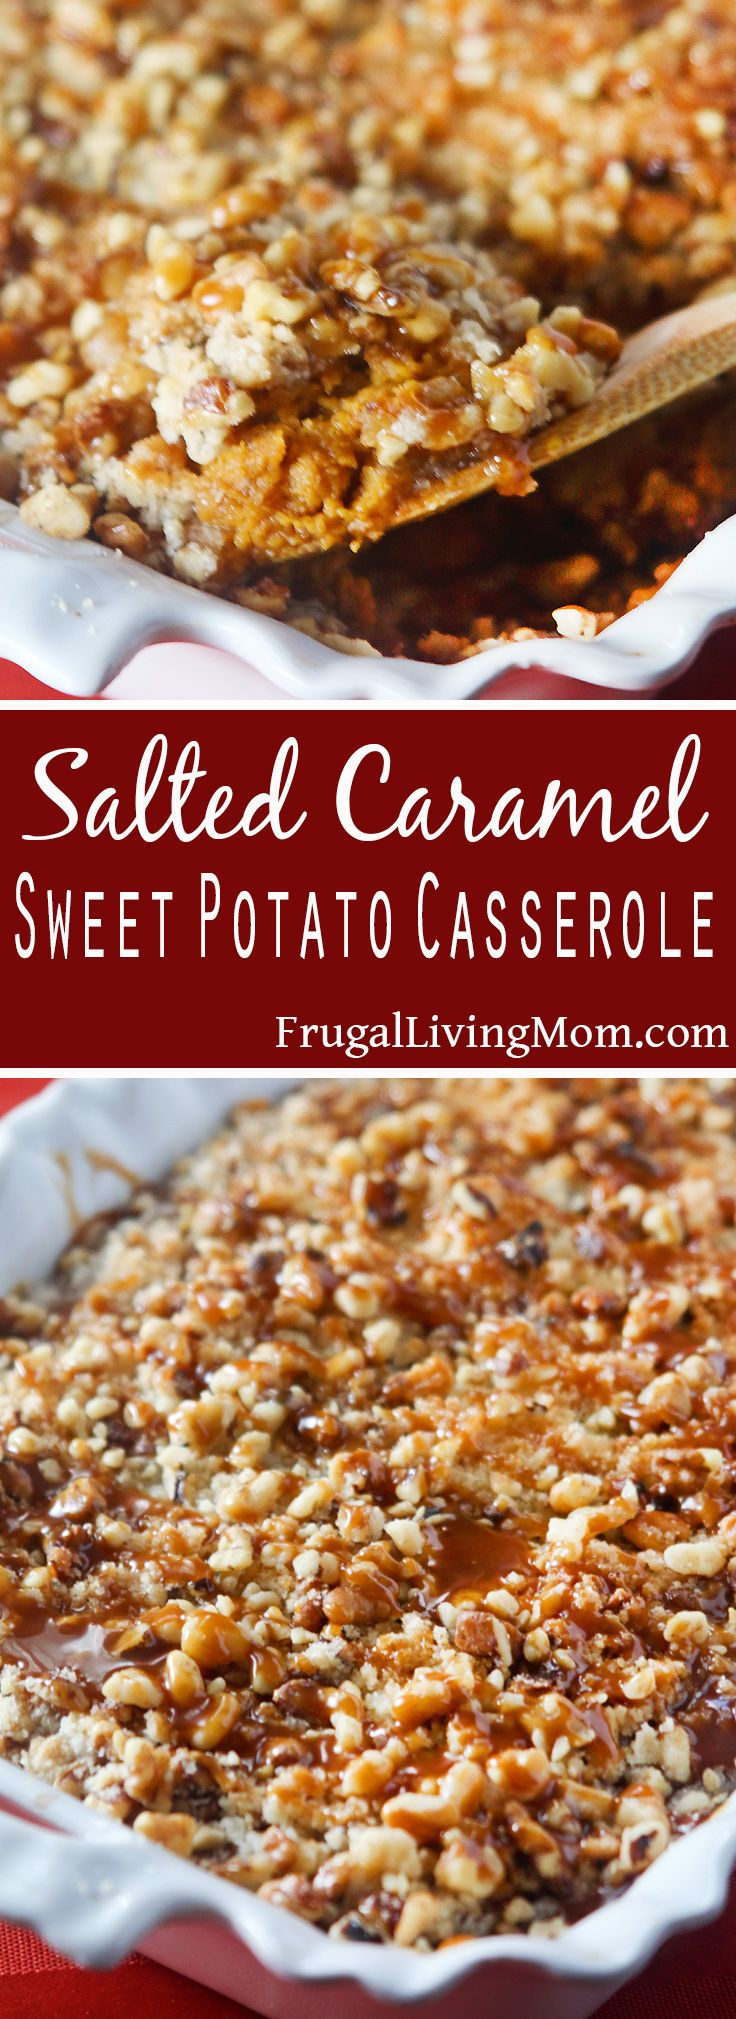 Looking for a new Sweet Potato Casserole recipe? You will love this one with Salted Caramel. Yum, just the right amount of sweet and salty. Perfect for your holiday table. Salted Caramel Sweet Potato Casserole